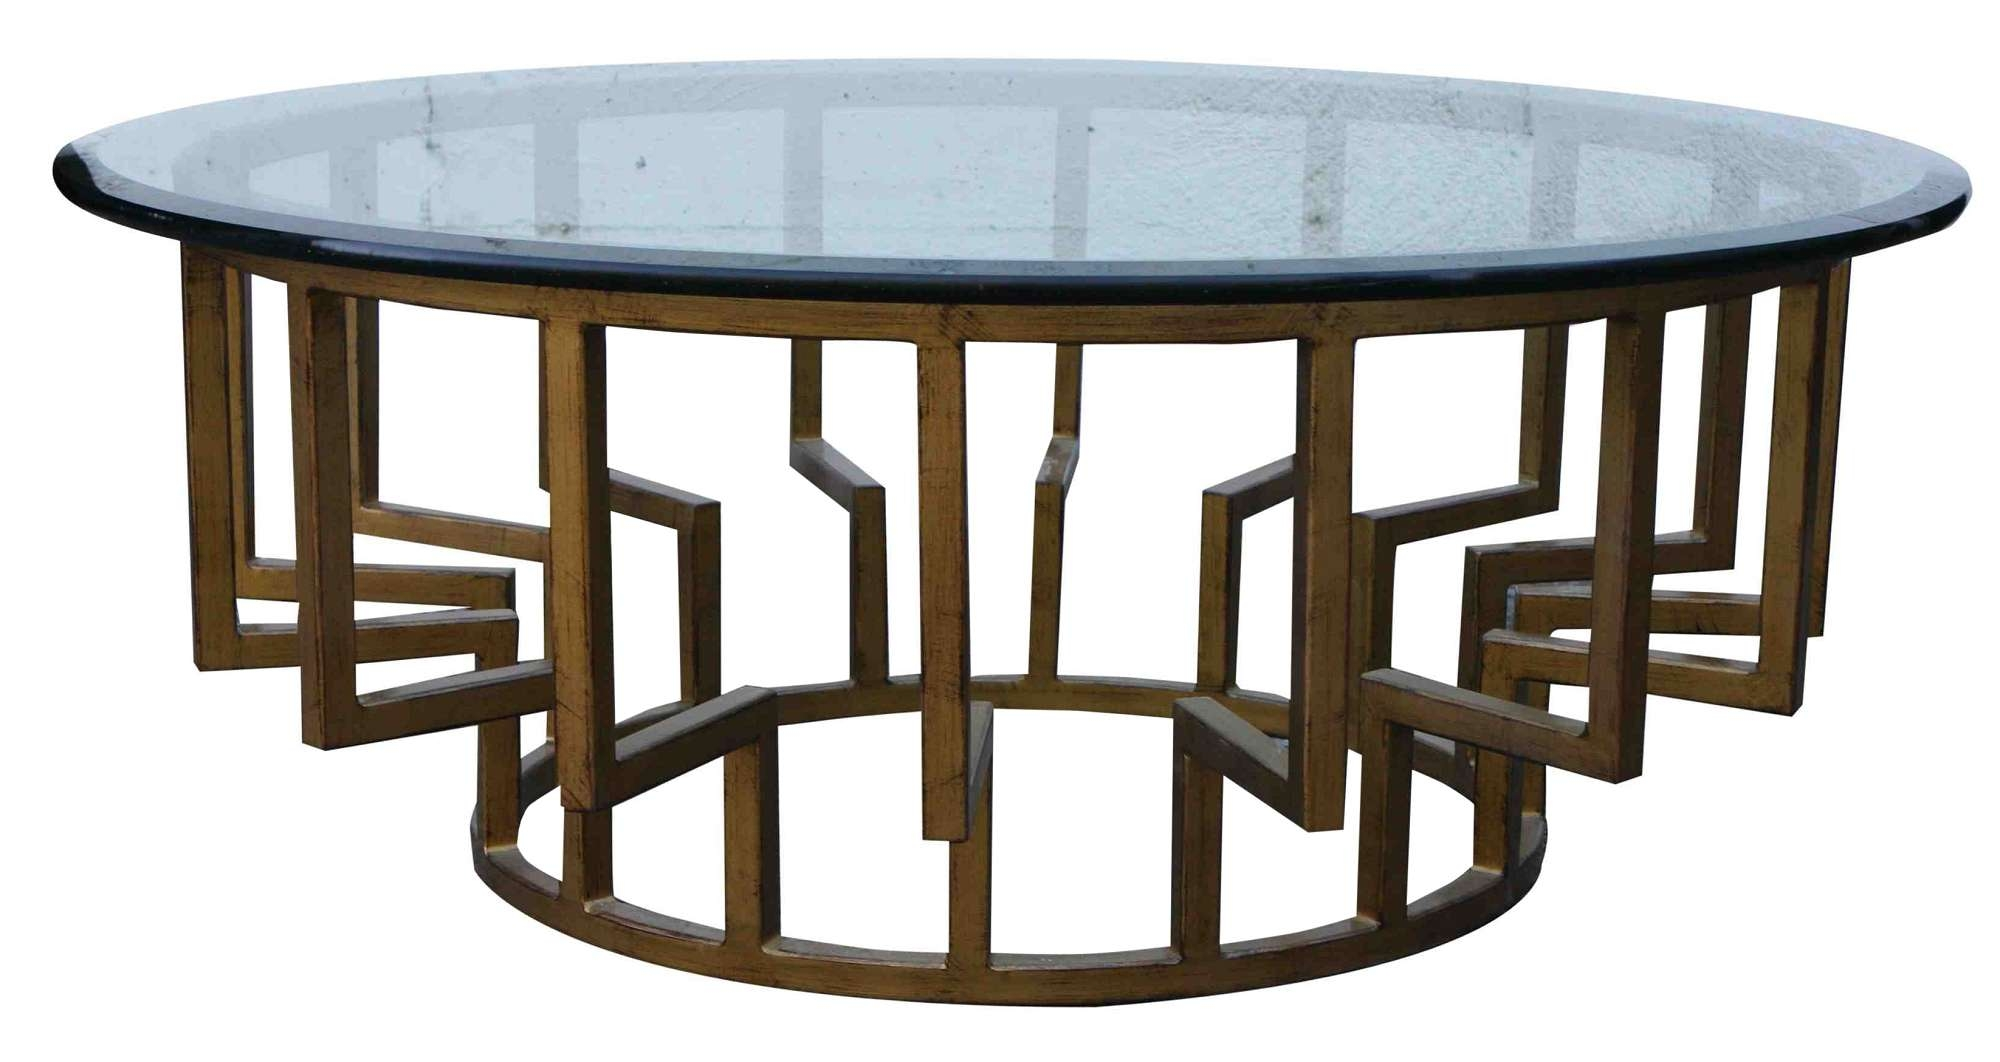 Most Recent Contemporary Round Coffee Tables Intended For Coffee Table: Contemporary Round Coffee Table Contemporary Square (View 15 of 20)